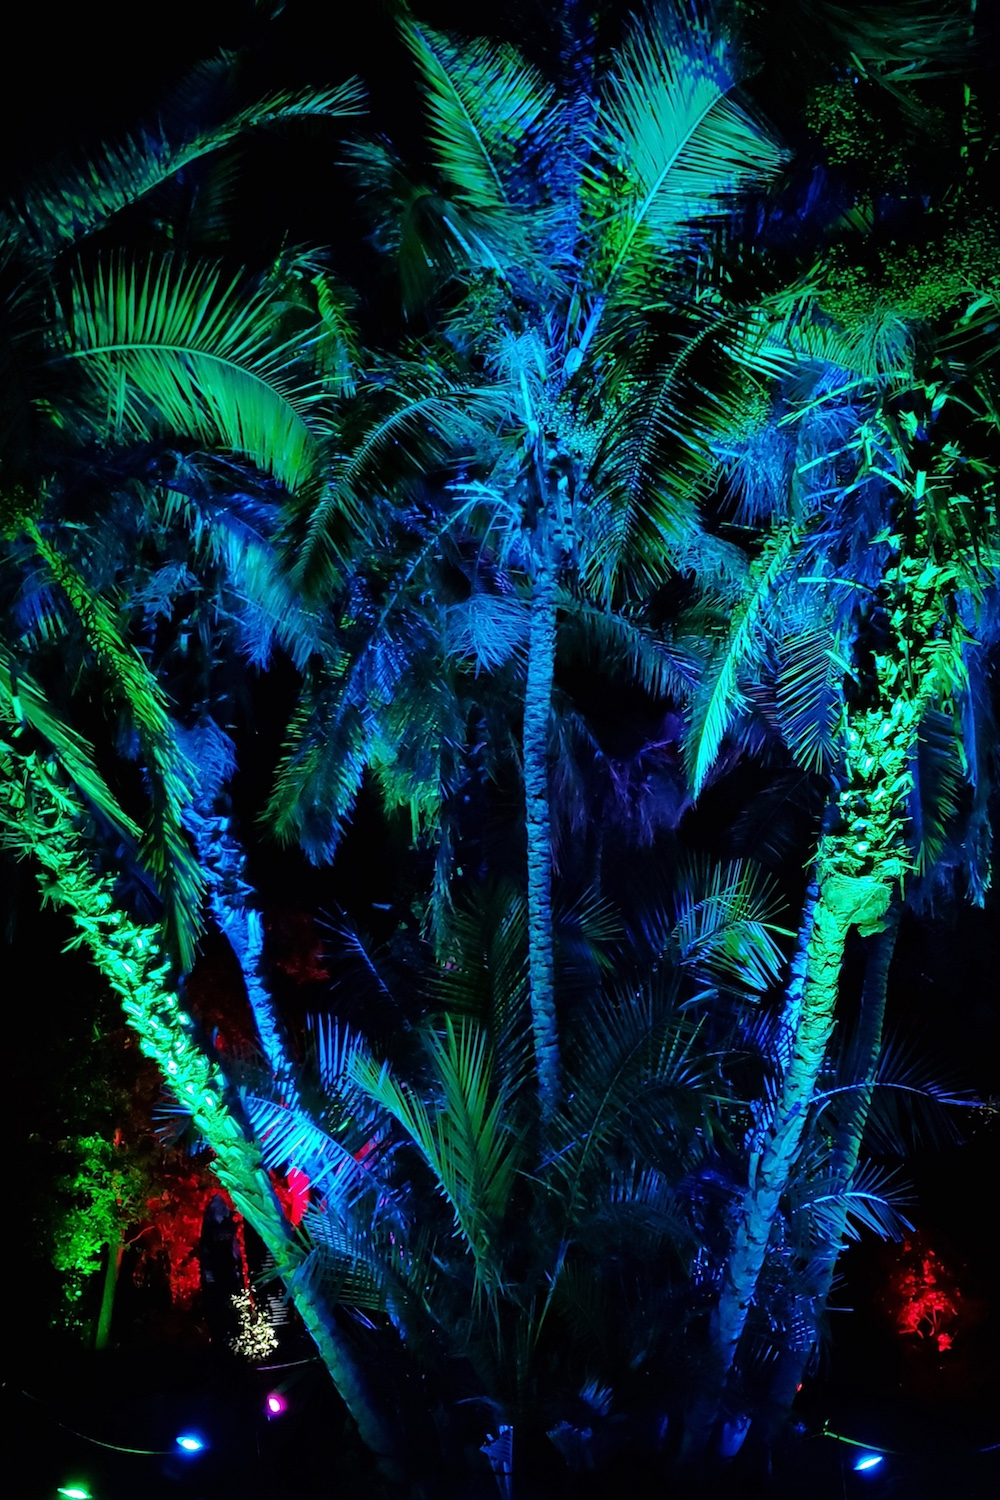 palm trees lit from underneath in blue and green